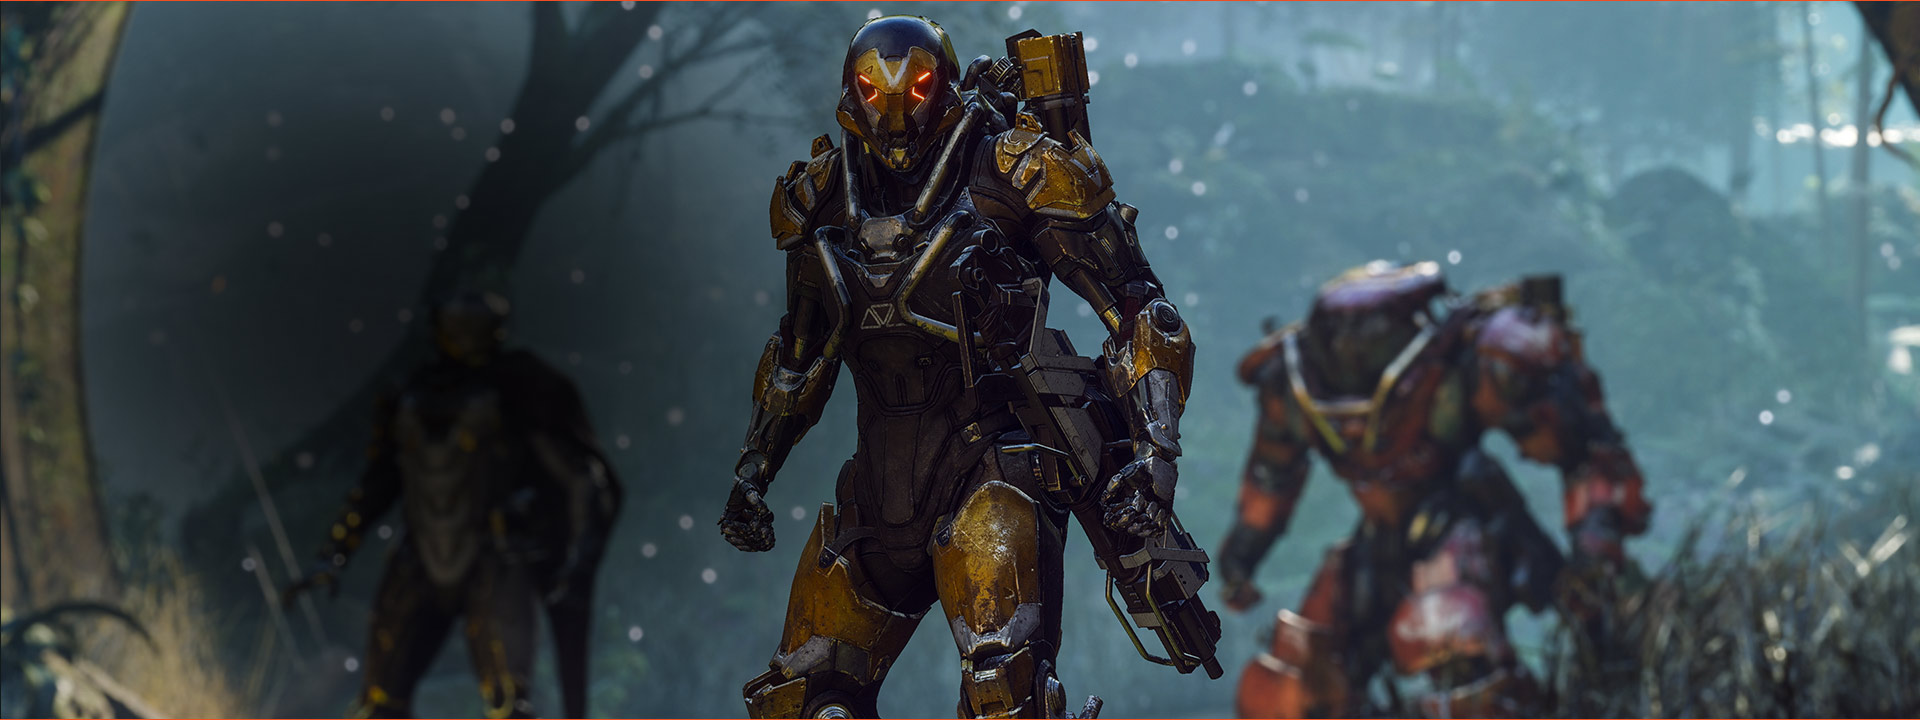 Close-up of 3 characters in exosuits